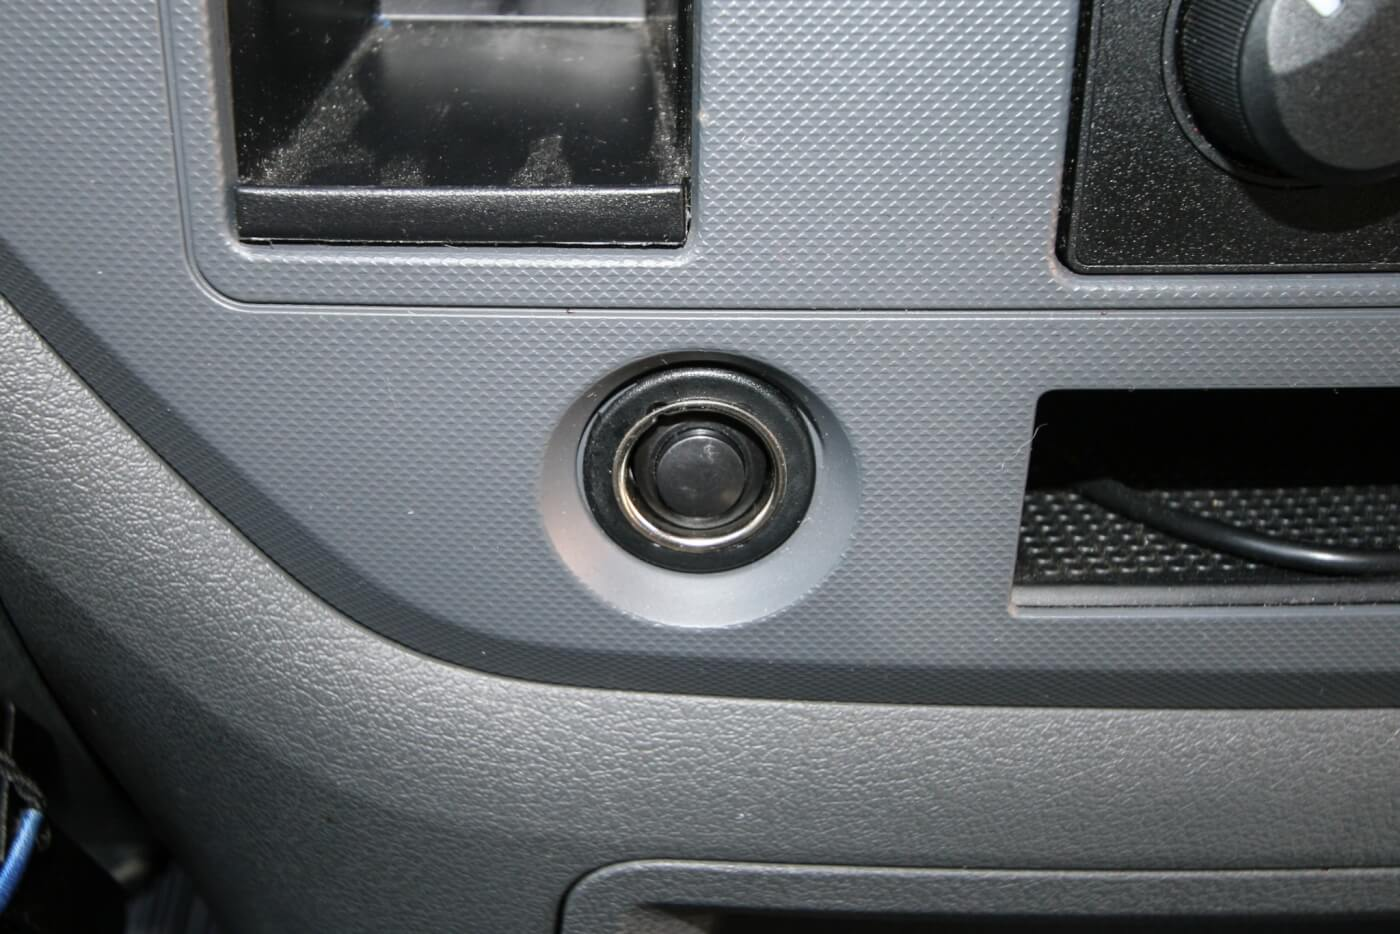 18. Since Daniel, the owner of the 2500 Dodge, had two cigarette lighter plugs, he decided to sacrifice one for a hidden air horn button. The included button fit nicely in the hole and some quick modifications to the OEM cigarette lighter meant, with the cap on, nobody knew that nearly 160 decibels of train horn were lurking underneath.